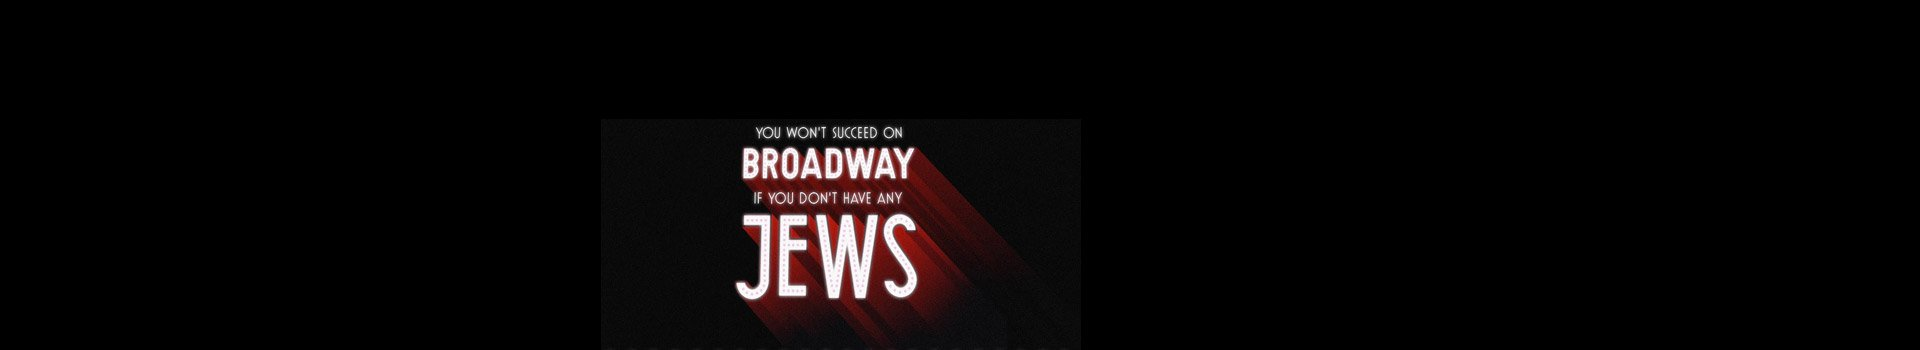 You Won't Succeed On Broadway if You Don't Have Any Jews banner image